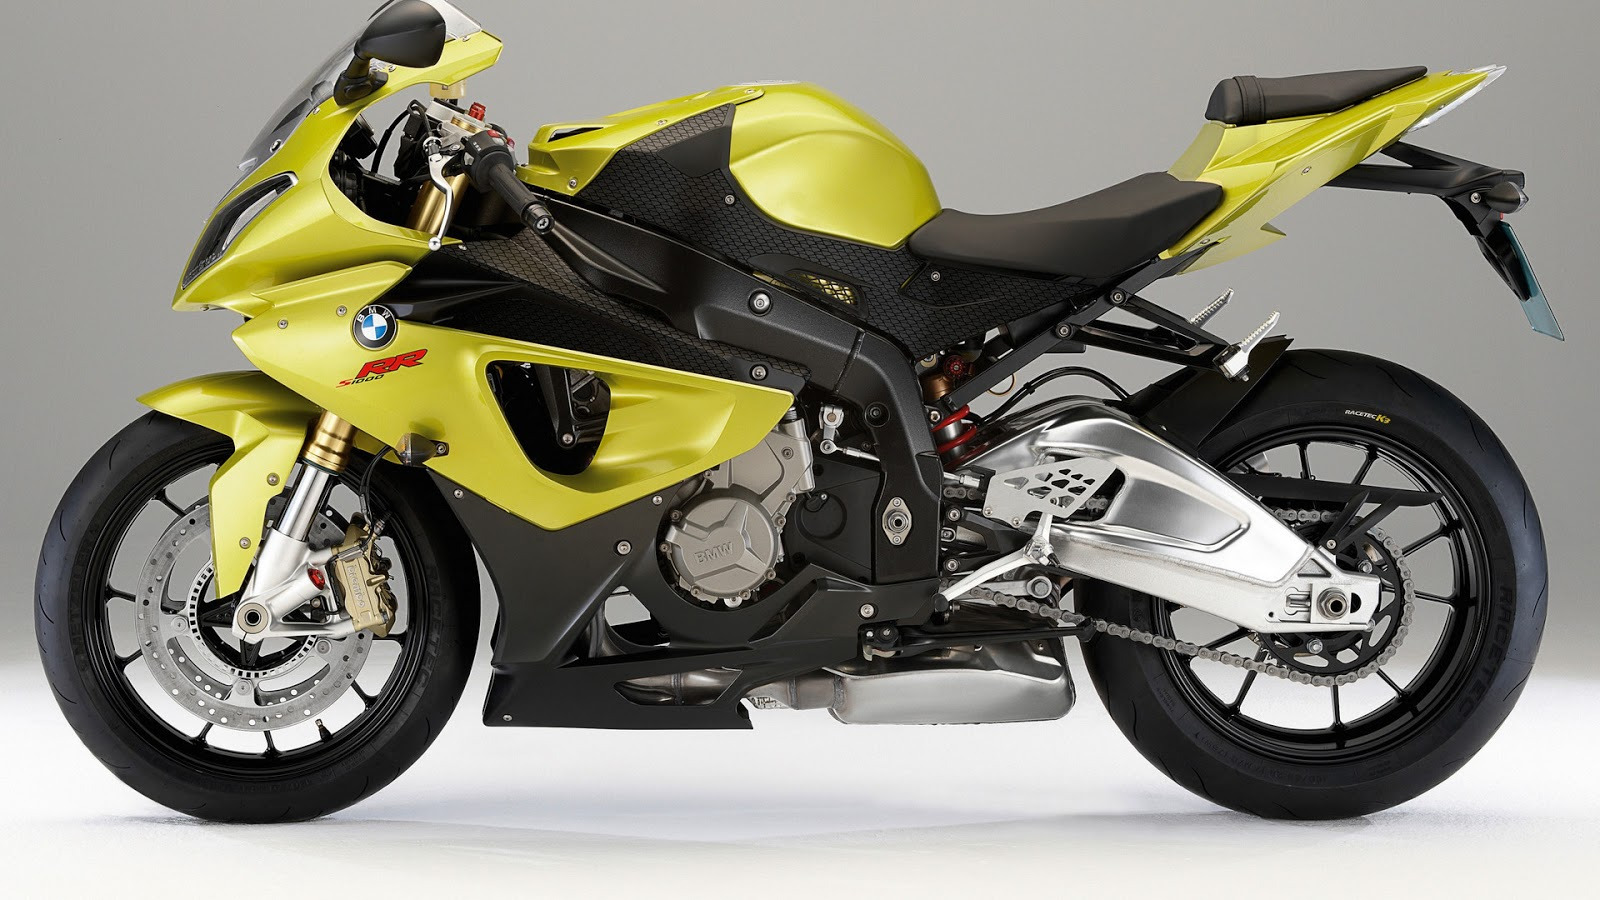 Top 5 Fastest Motorcycles 2014 In The World | ChaT PhONE Blog |Fastest Bmw Bike